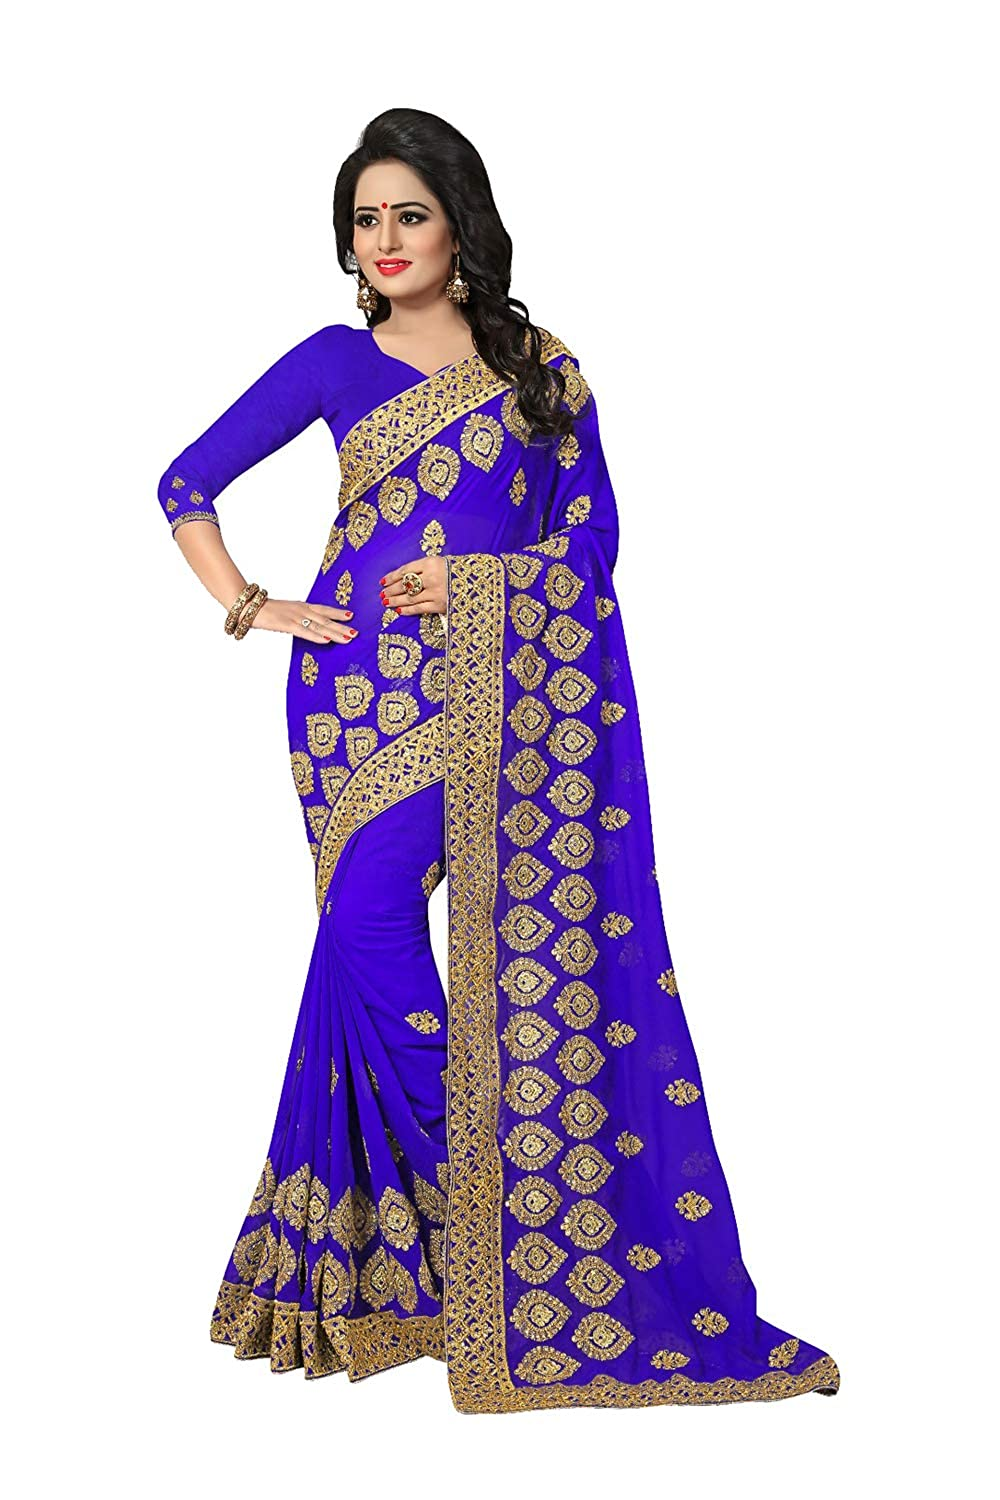 bluee 5 daindiashopUSA Indian Sarees for Women Designer Party Wear Traditional Sari.